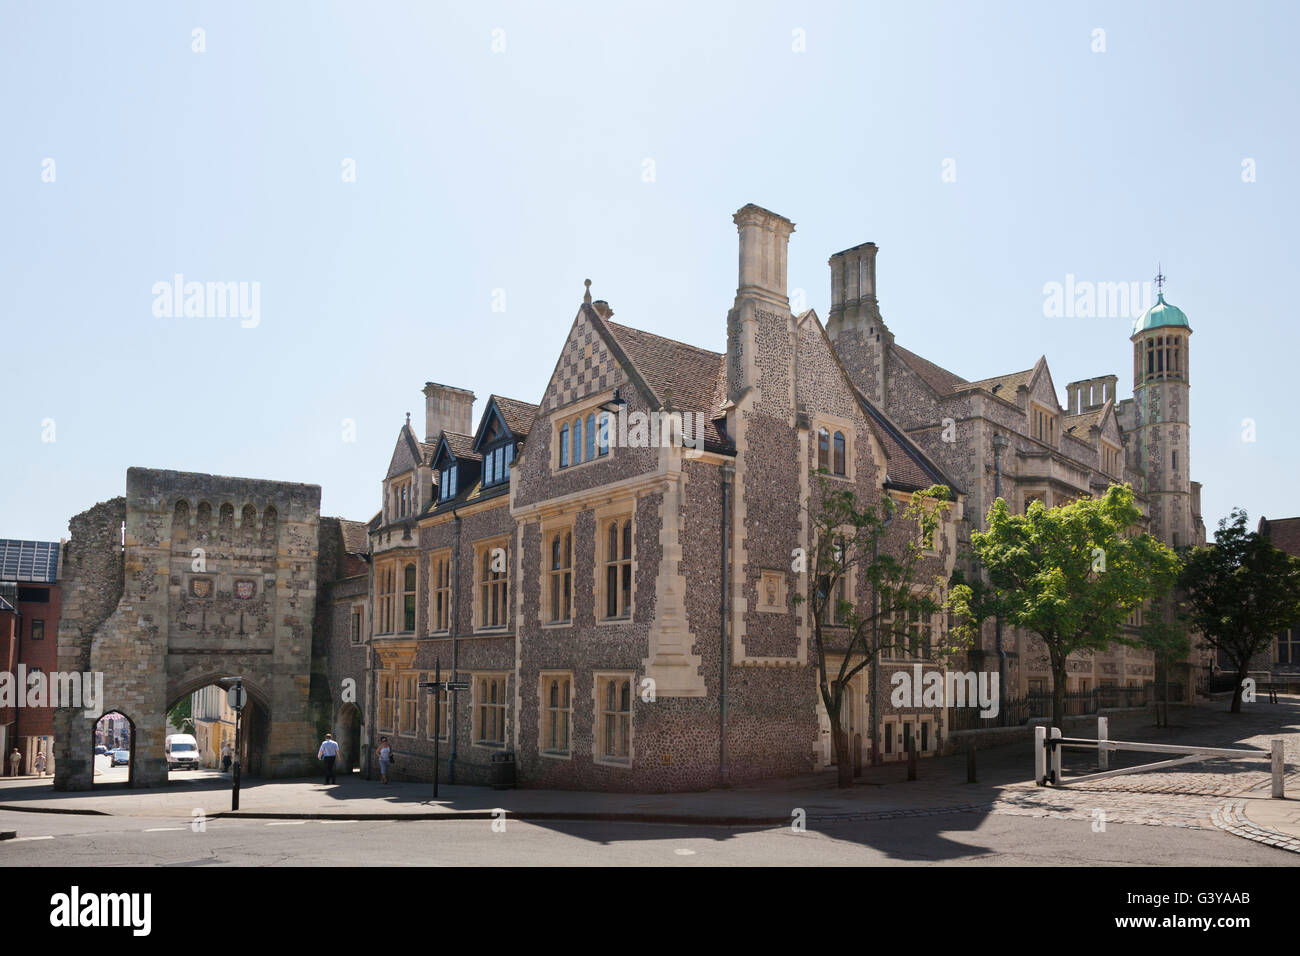 Westgate at the top of Winchester High Street, Winchester, Hampshire, England, United Kingdom, Europe - Stock Image